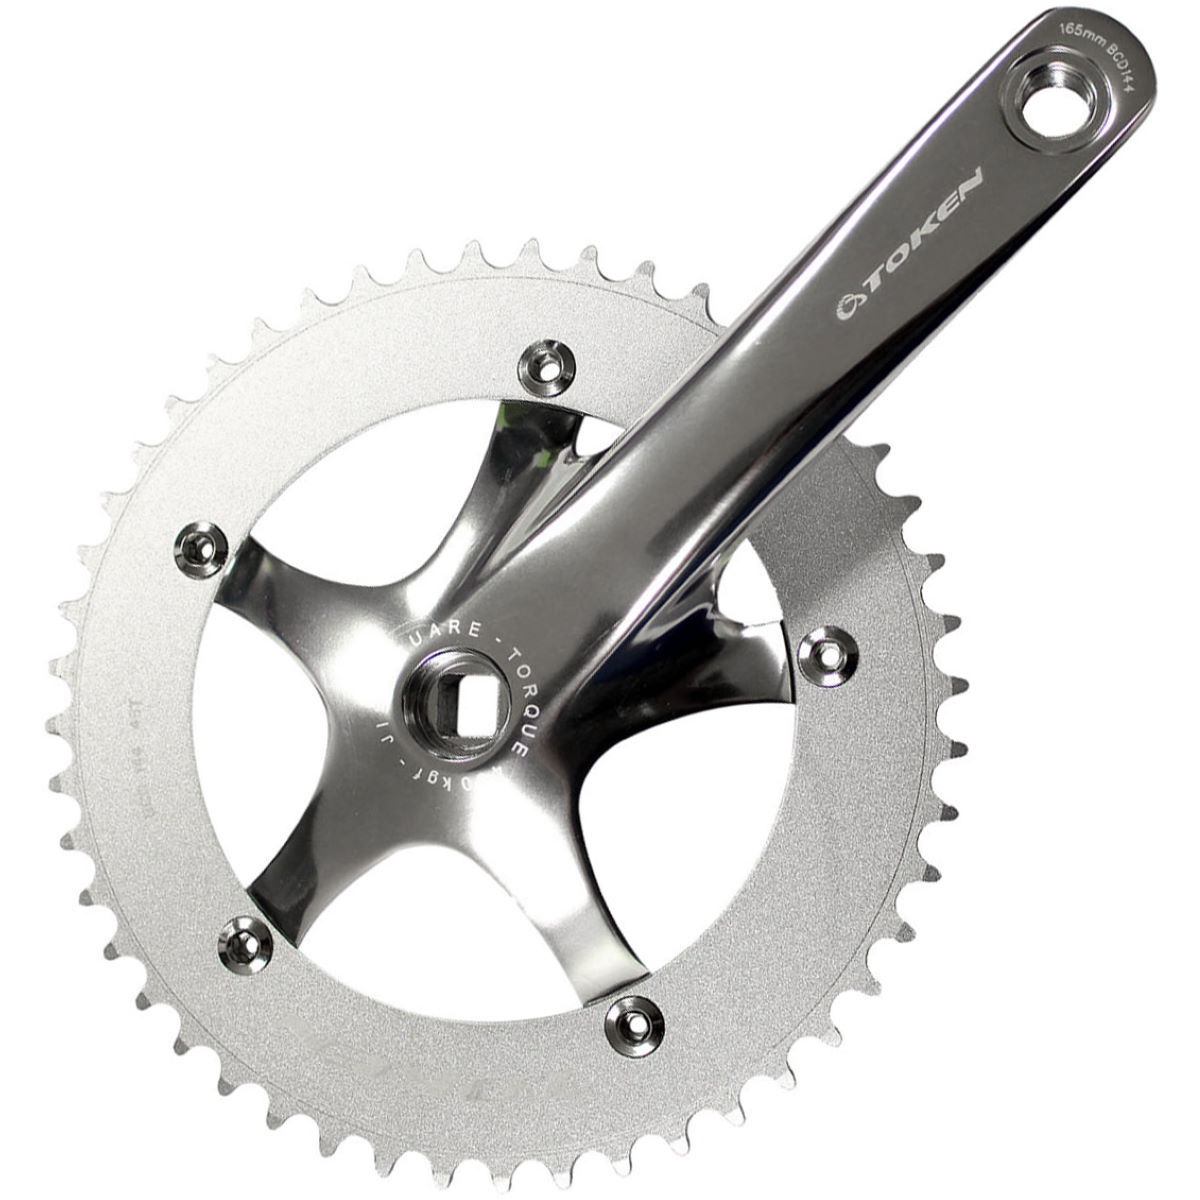 Pédalier de piste Token TK2051 (alliage) - 170mm Cranks 170mm